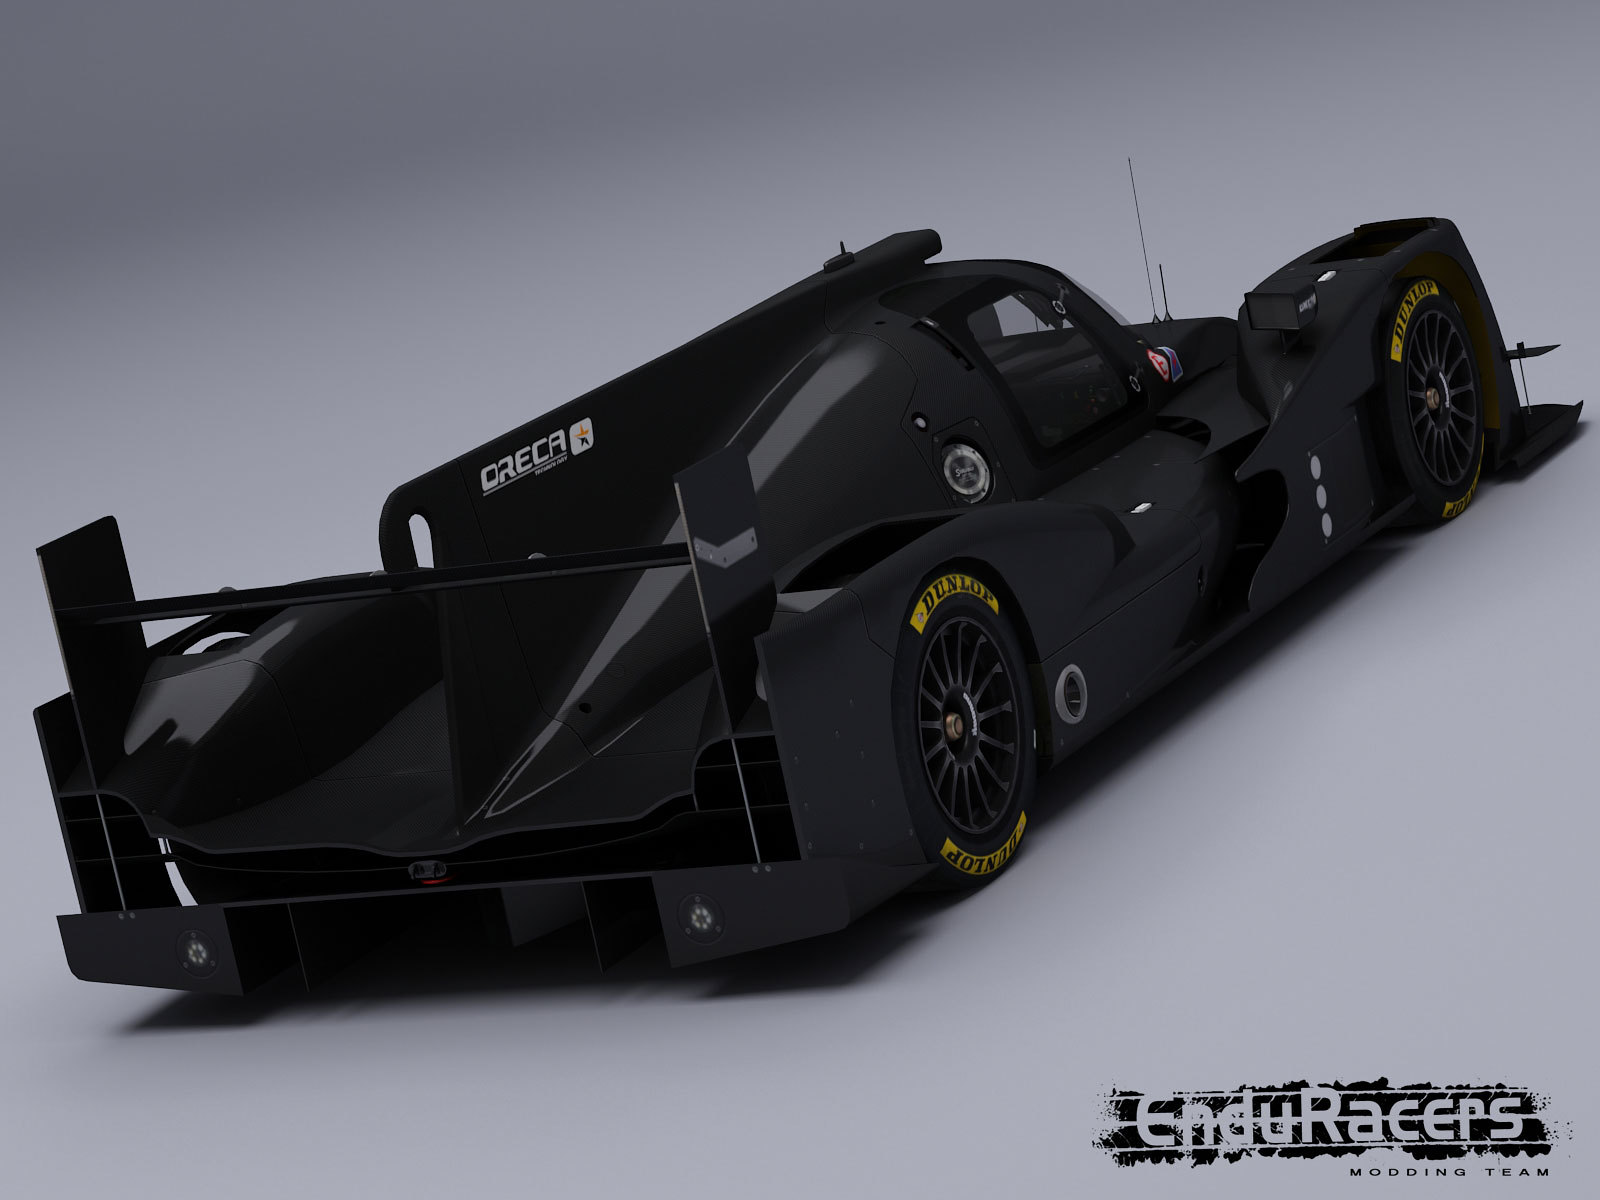 Enduracers Alpine_01 Oreca05_02